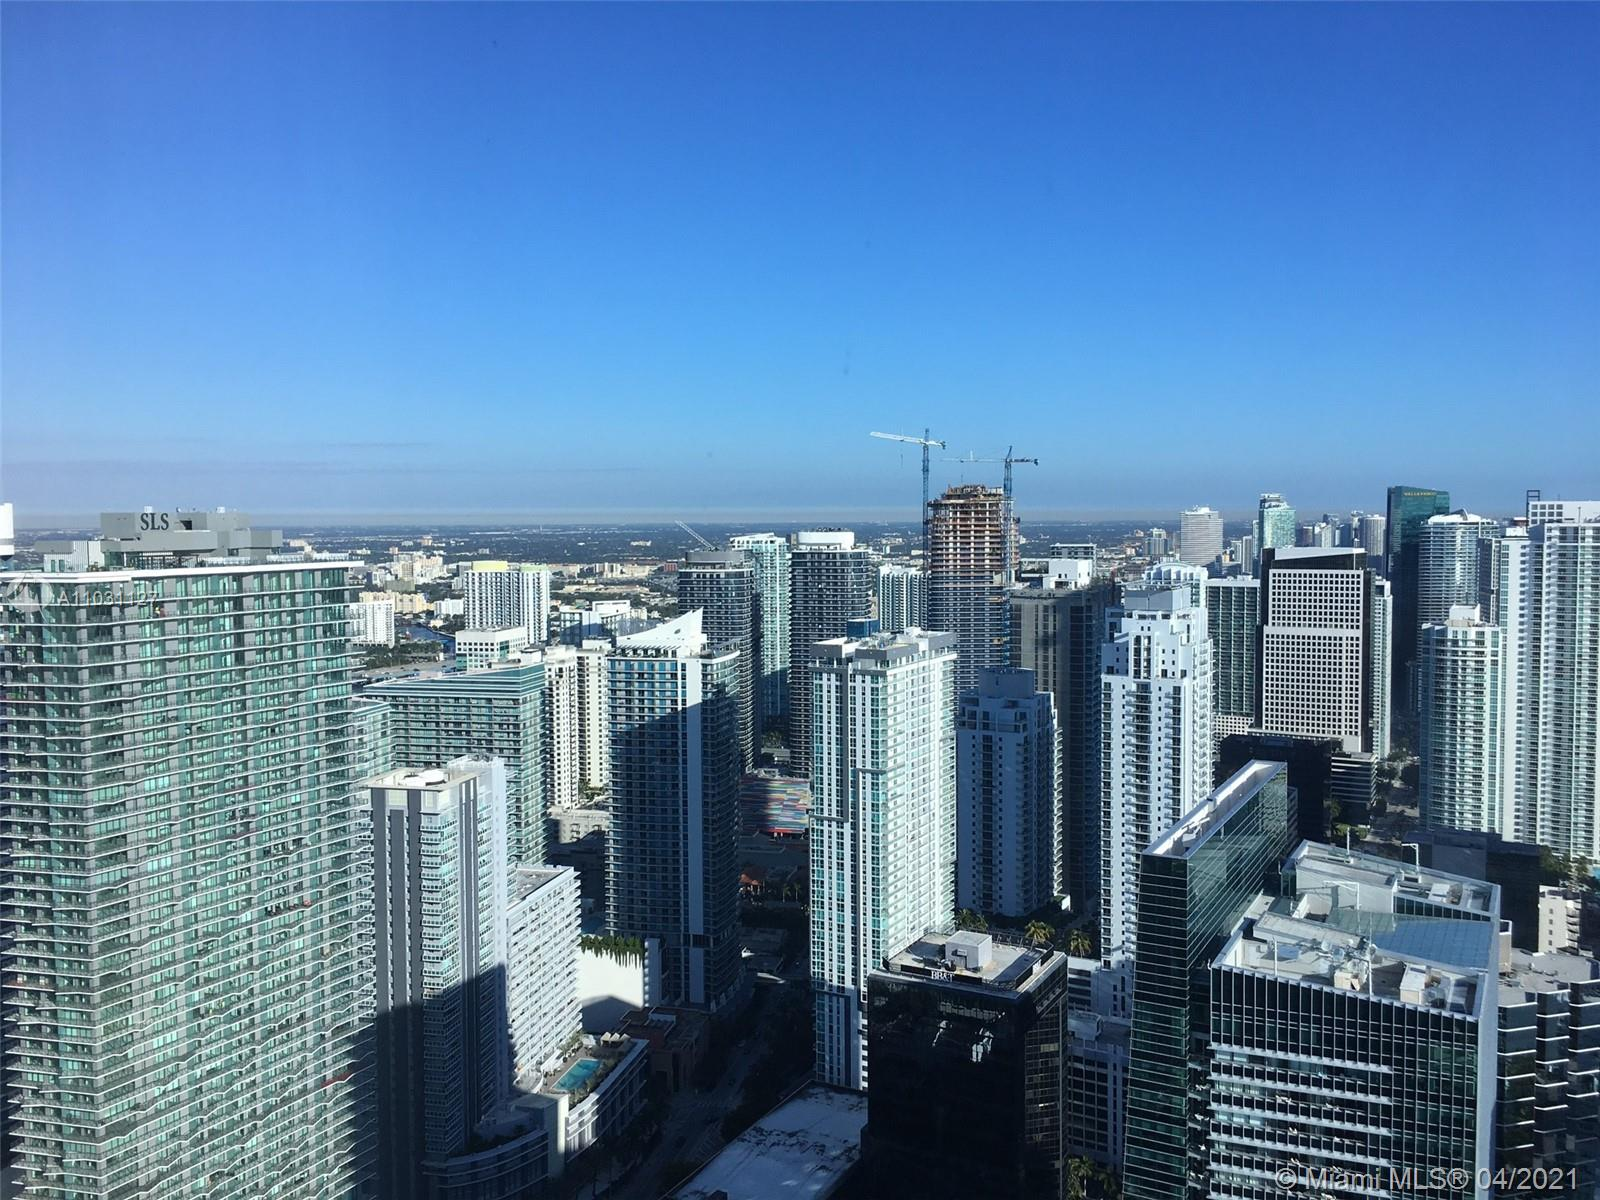 Furnished, beautifully upgraded unit on the 58th floor, gorgeous Miami skyline, bay and ocean views.  Top of the line Miele and Viking appliances.  Remote Control window treatments, unique electric privacy glass in master bathroom.   5 star Four Seasons living, 24 hour room service and concierge.  Easy to show, text preferred.  Occupied until June 30, 2021.